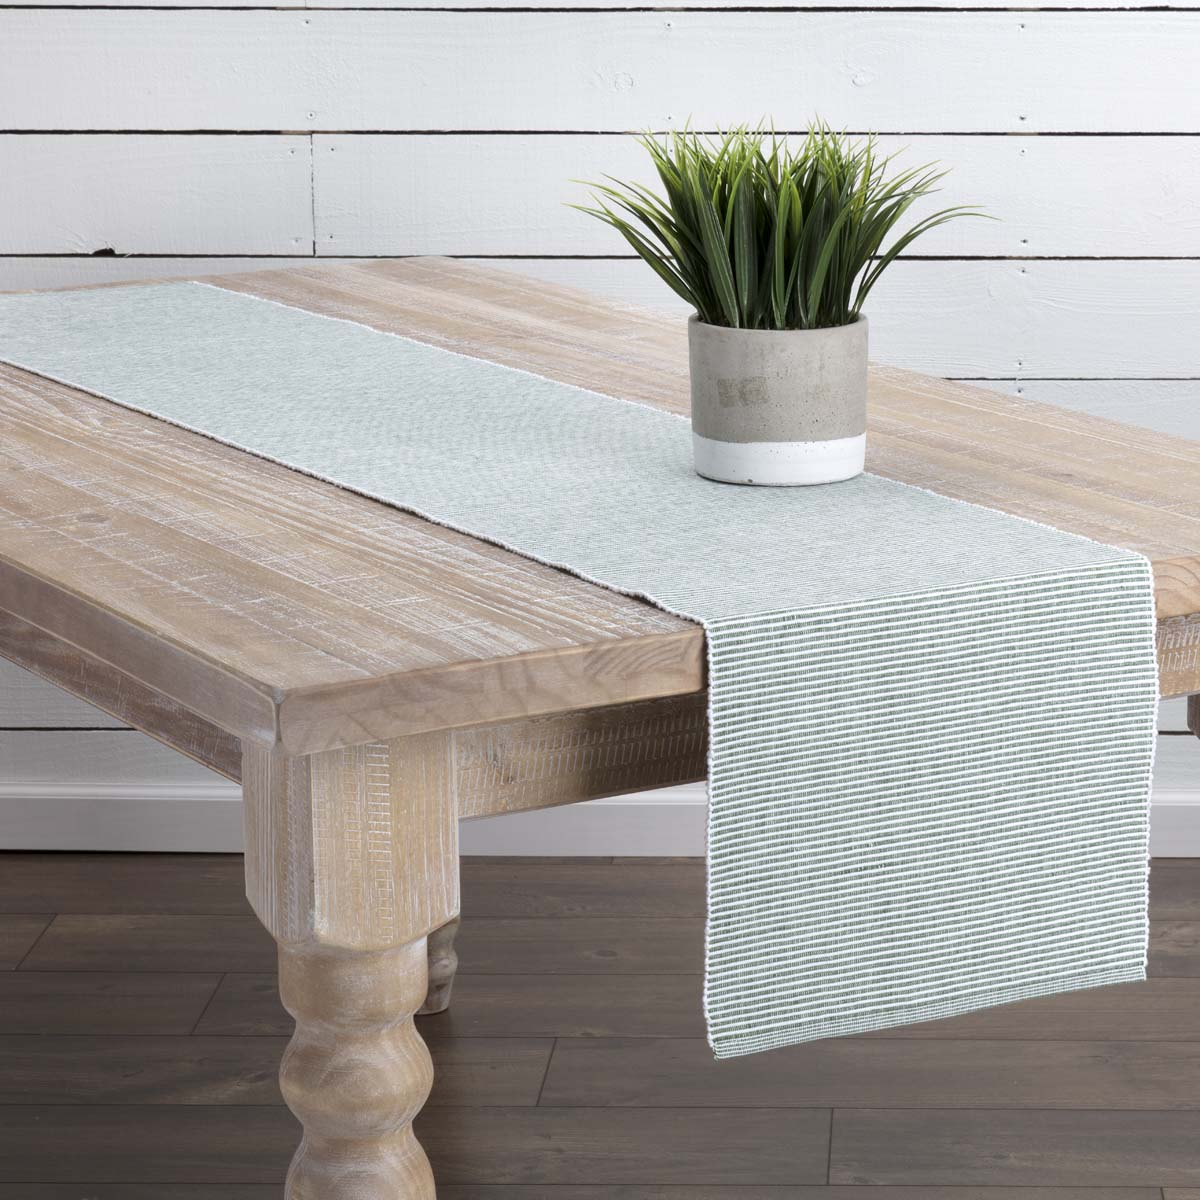 Basil Green Farmhouse Tabletop Kitchen Ashton Cotton Striped Rectangle 13x72 Runner